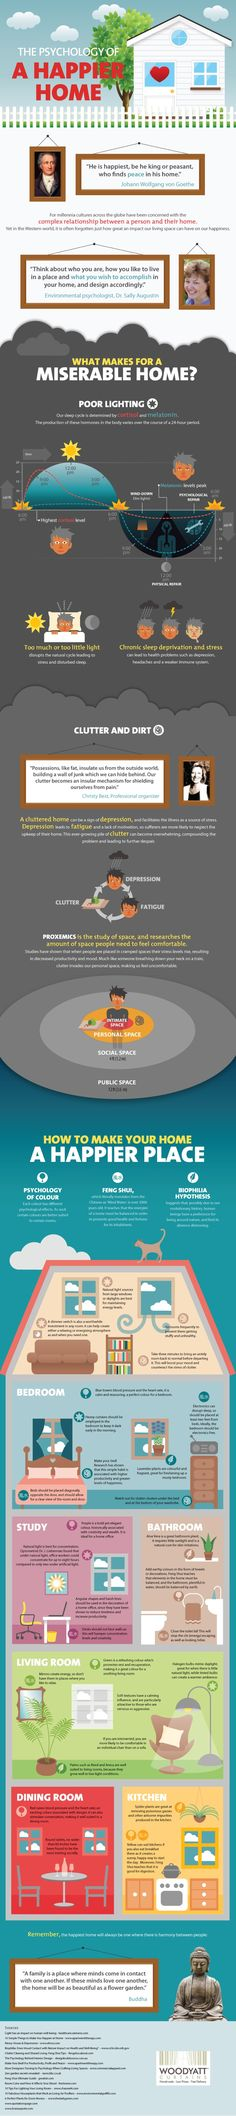 The psychology of a Happy Home- interesting